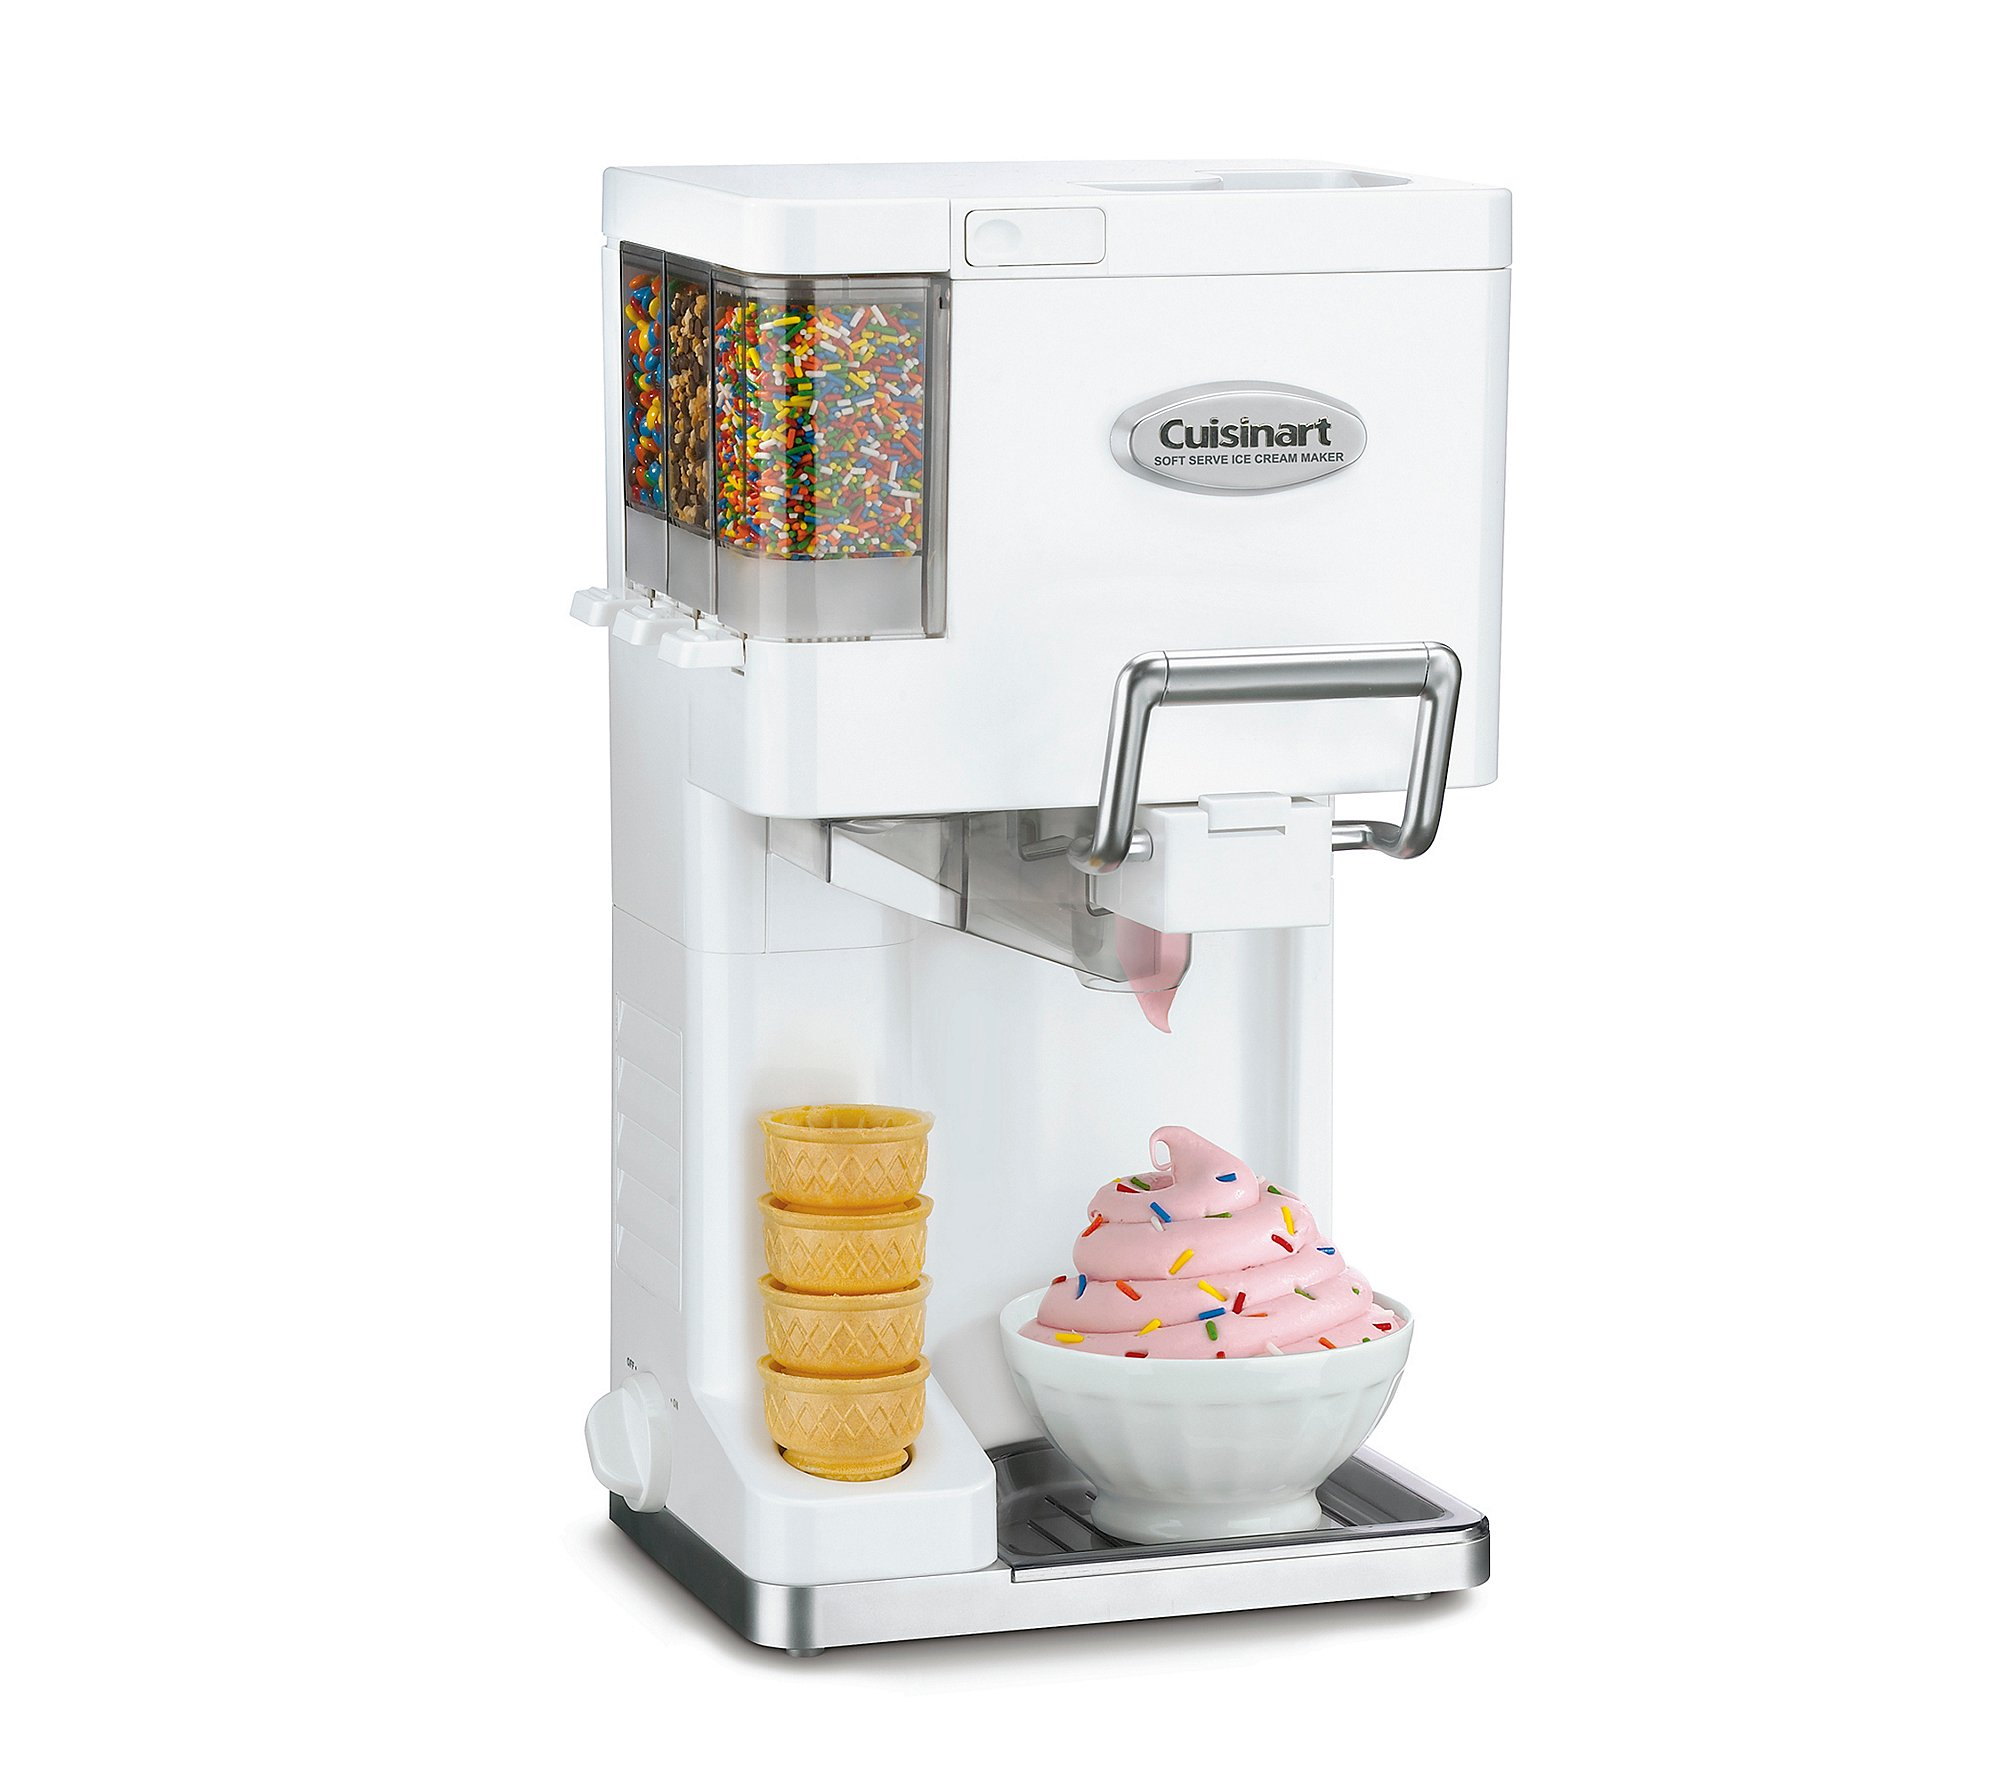 Cuisinart ICE-45 Mix It In Soft Serve 1-1/2-Quart Ice-Cream Maker 718JkSLmfcL